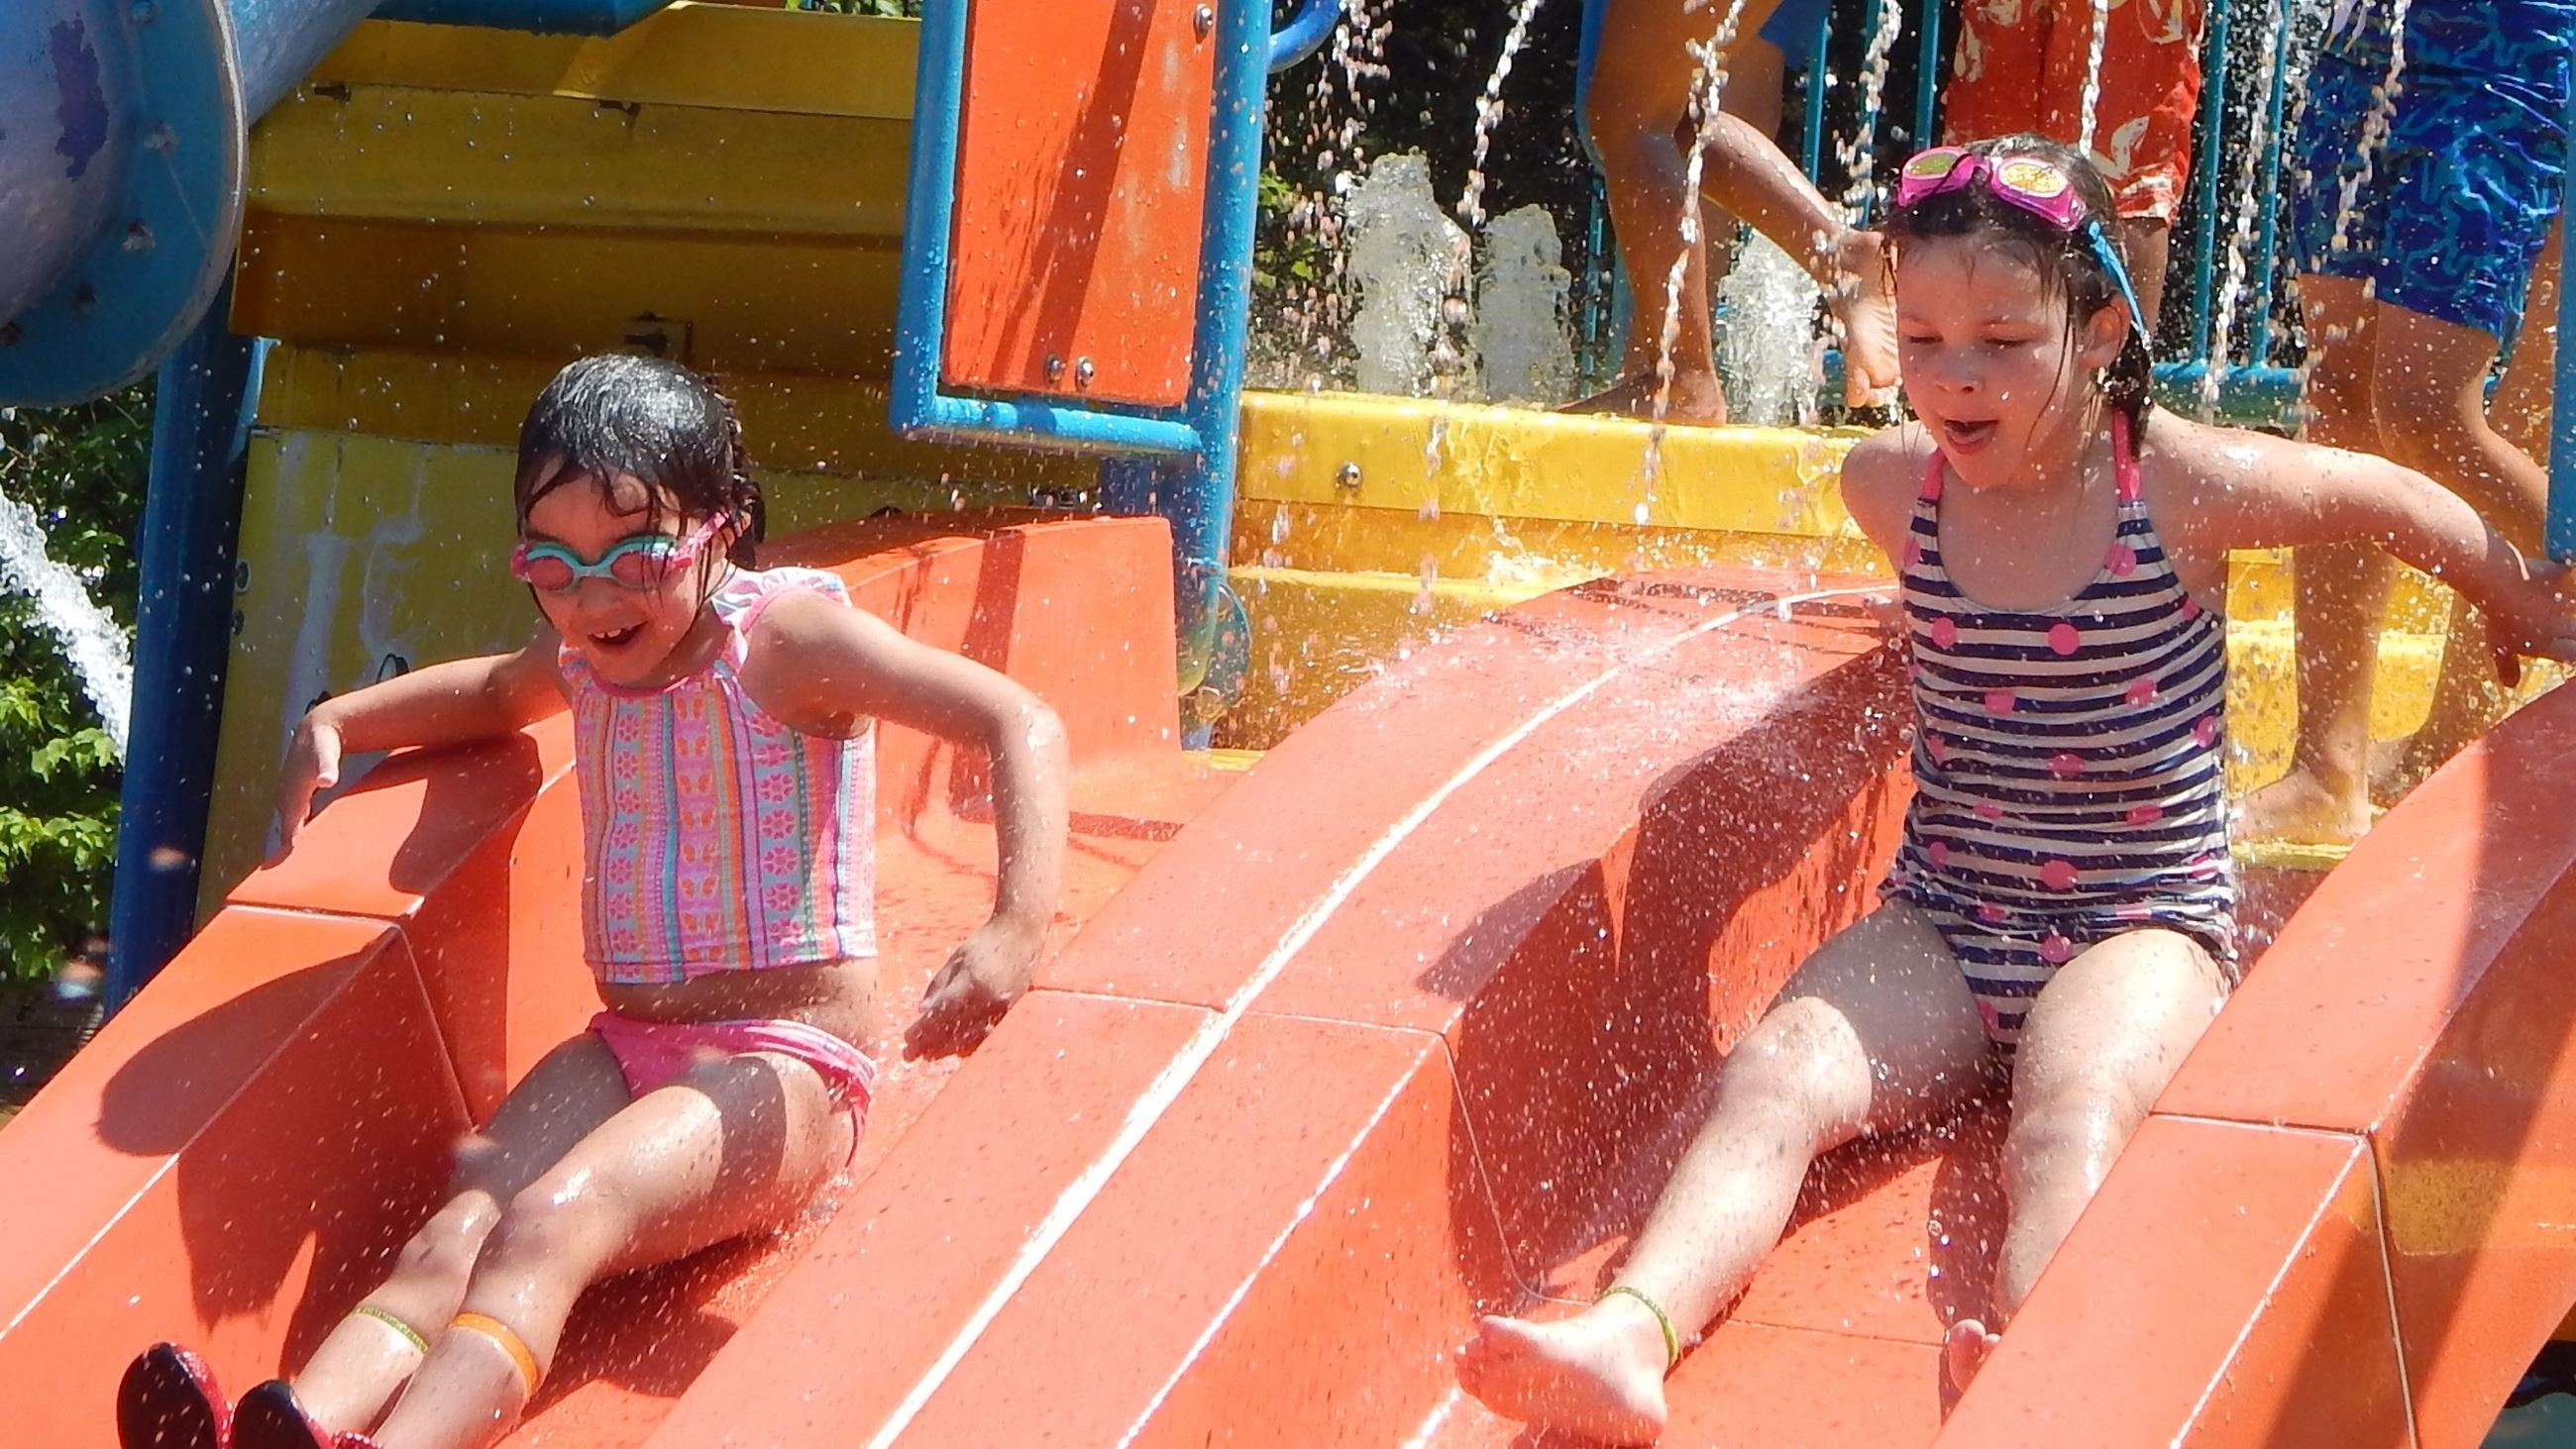 Two kids sliding down a water slide